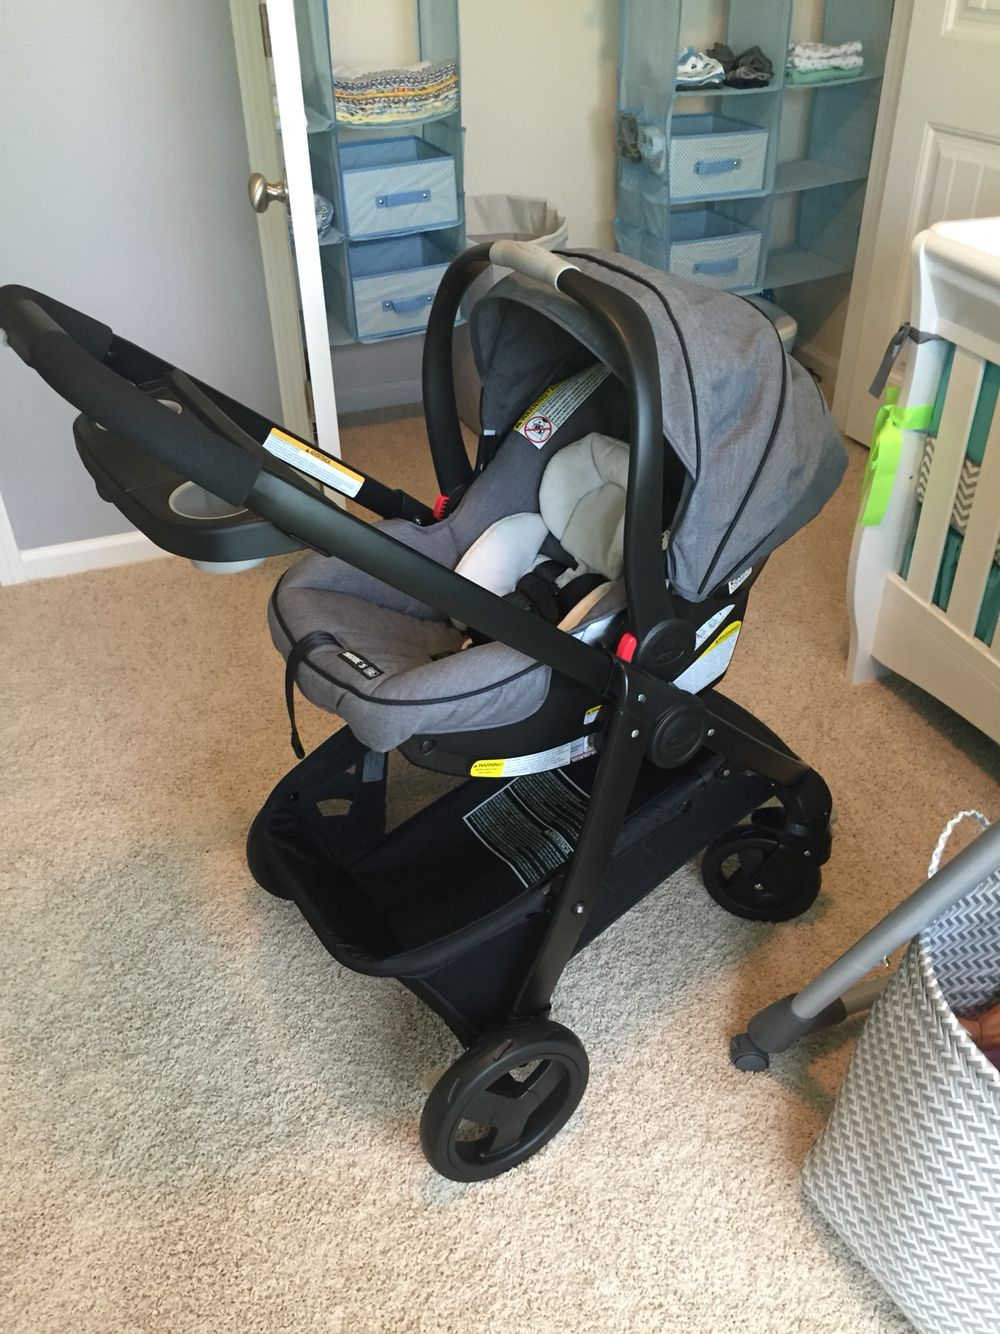 Travel System With Convertible Car Seat Pin By Kwazi Khuzwayo On Baby Product Baby New Baby